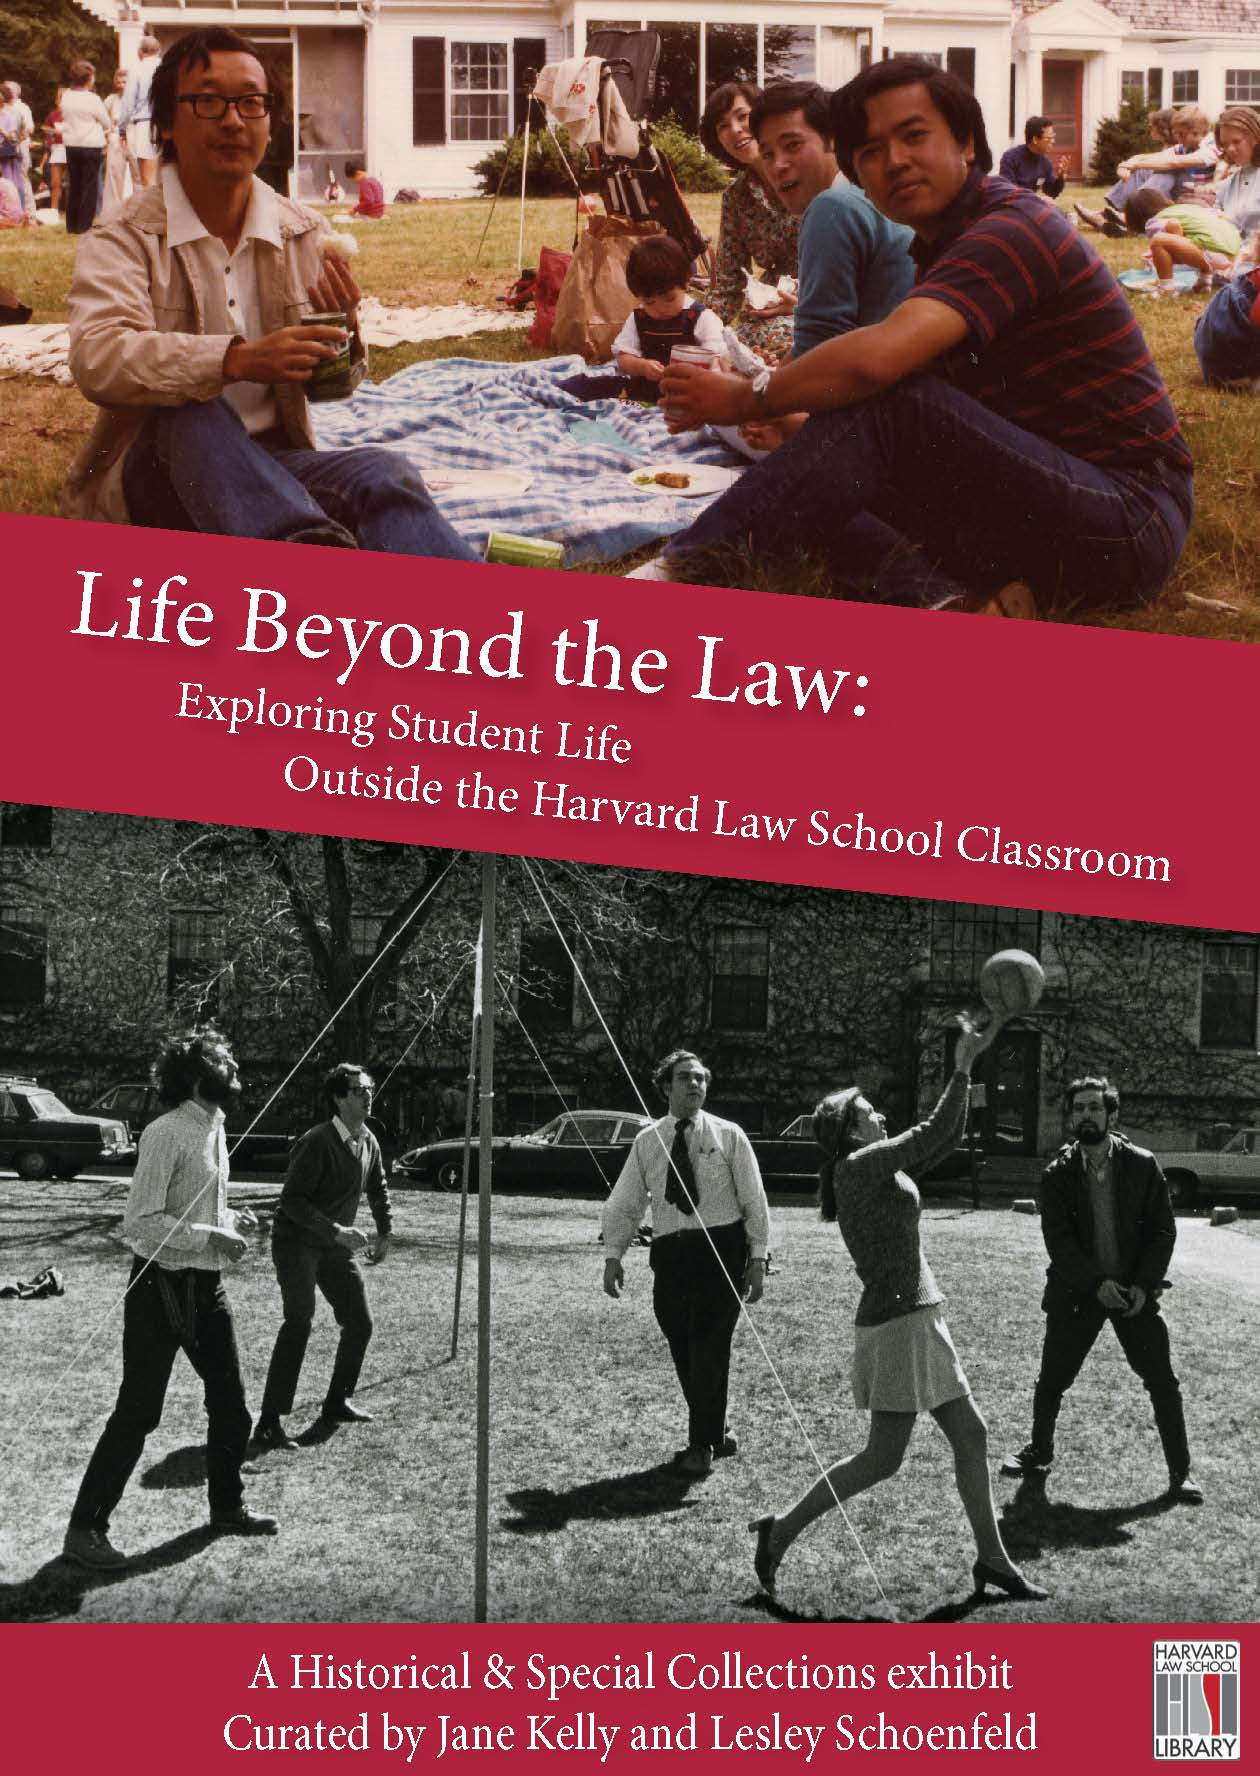 Exhibit Poster for Life Beyond the Law: Exploring Student Life Outside the Harvard Law School Classroom